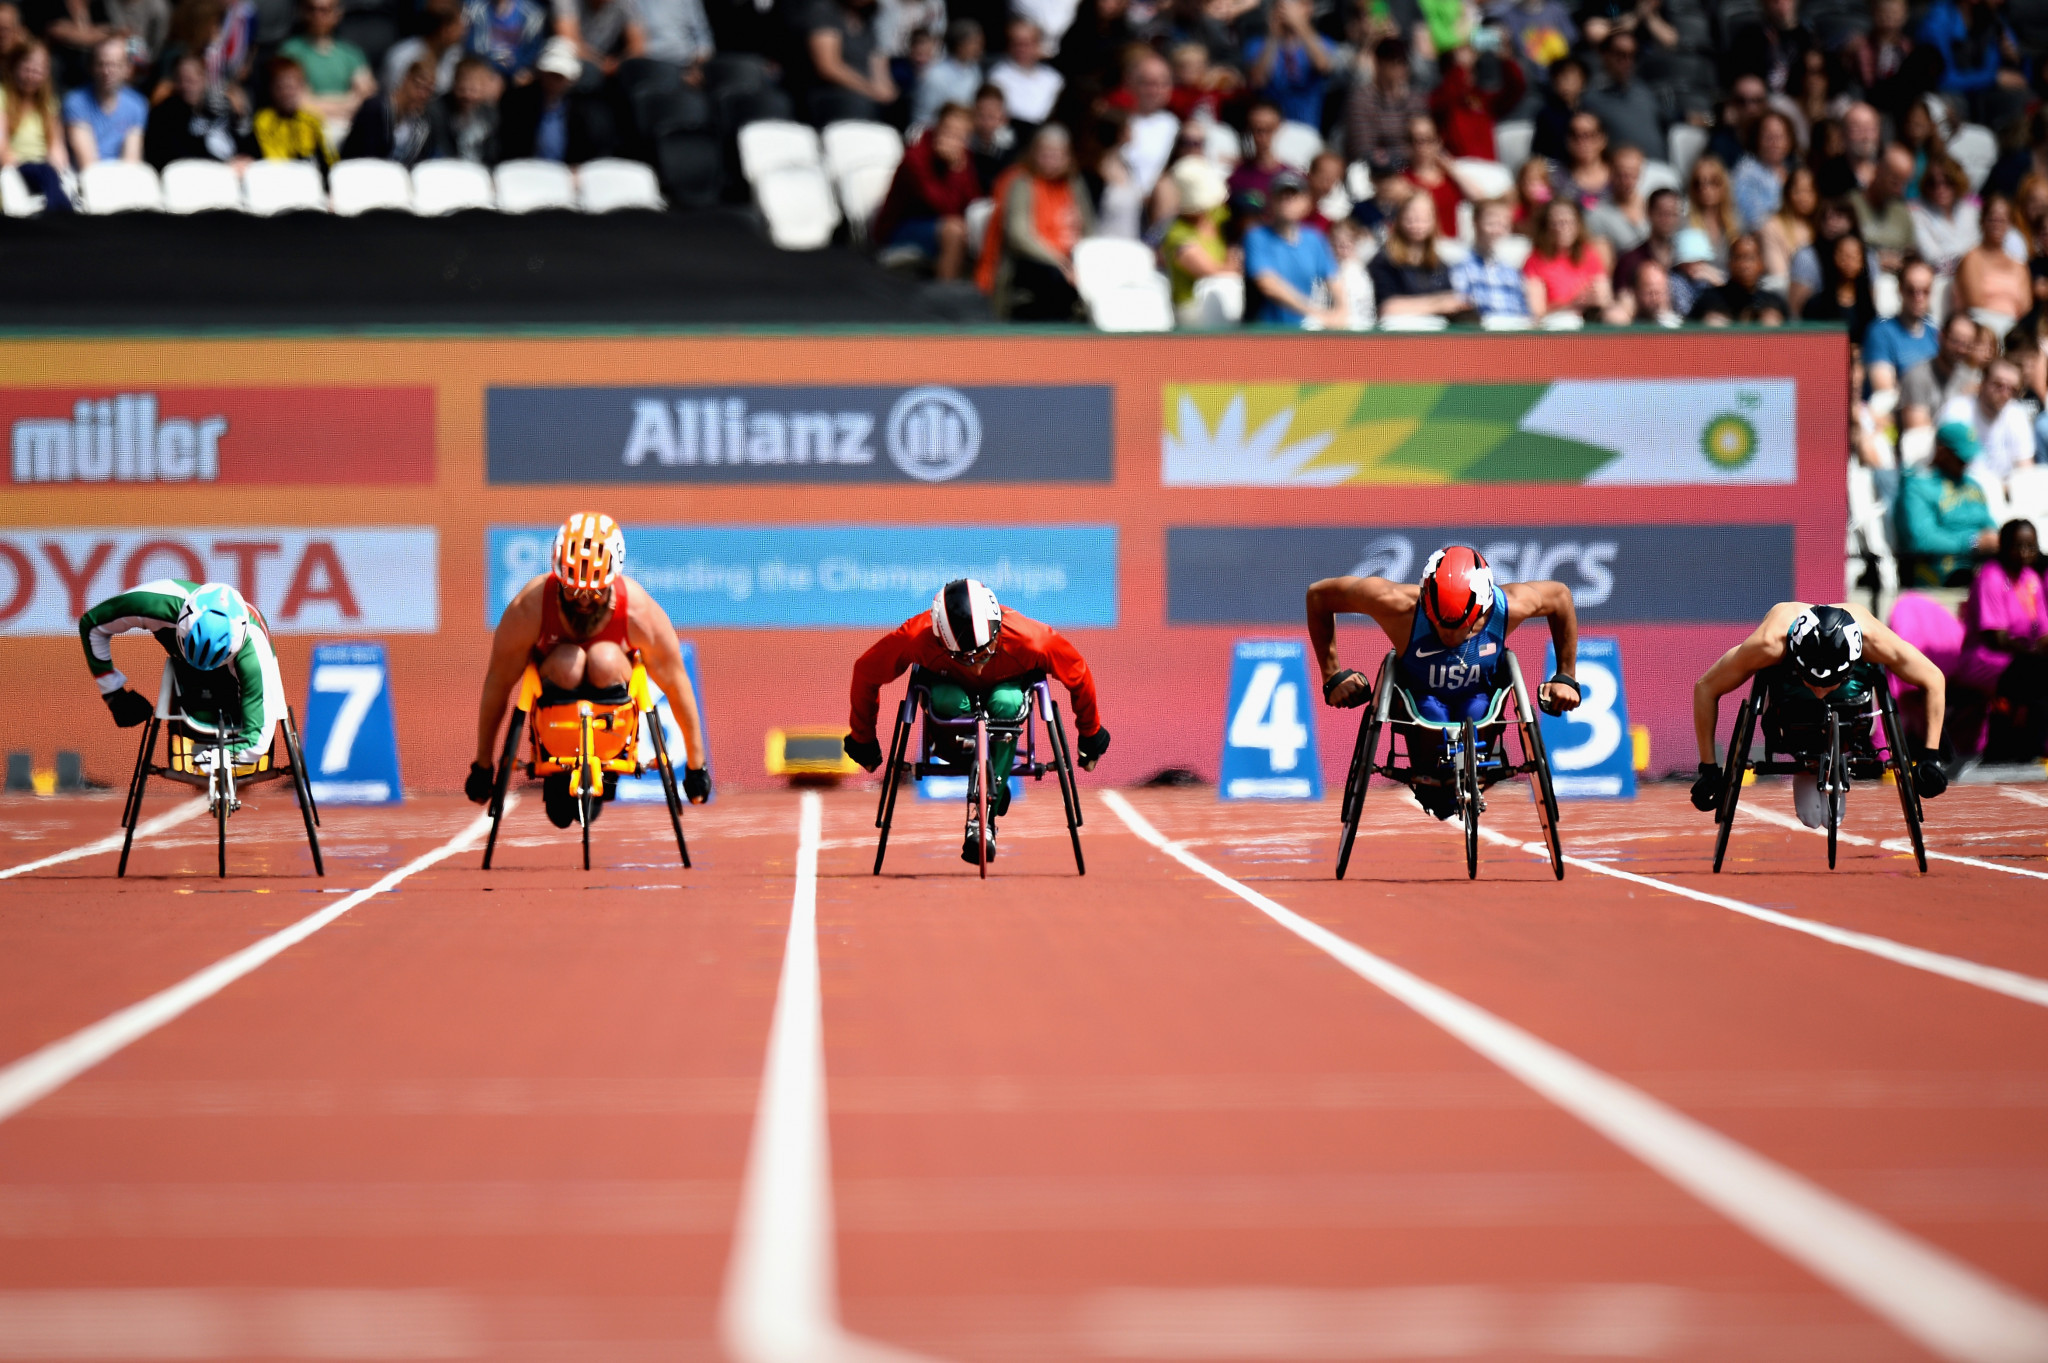 The 2017 World Para Athletics Championships took place in London but, despite the success of the event, the city decided not to bid again for the 2019 edition because of the cost ©Getty Images